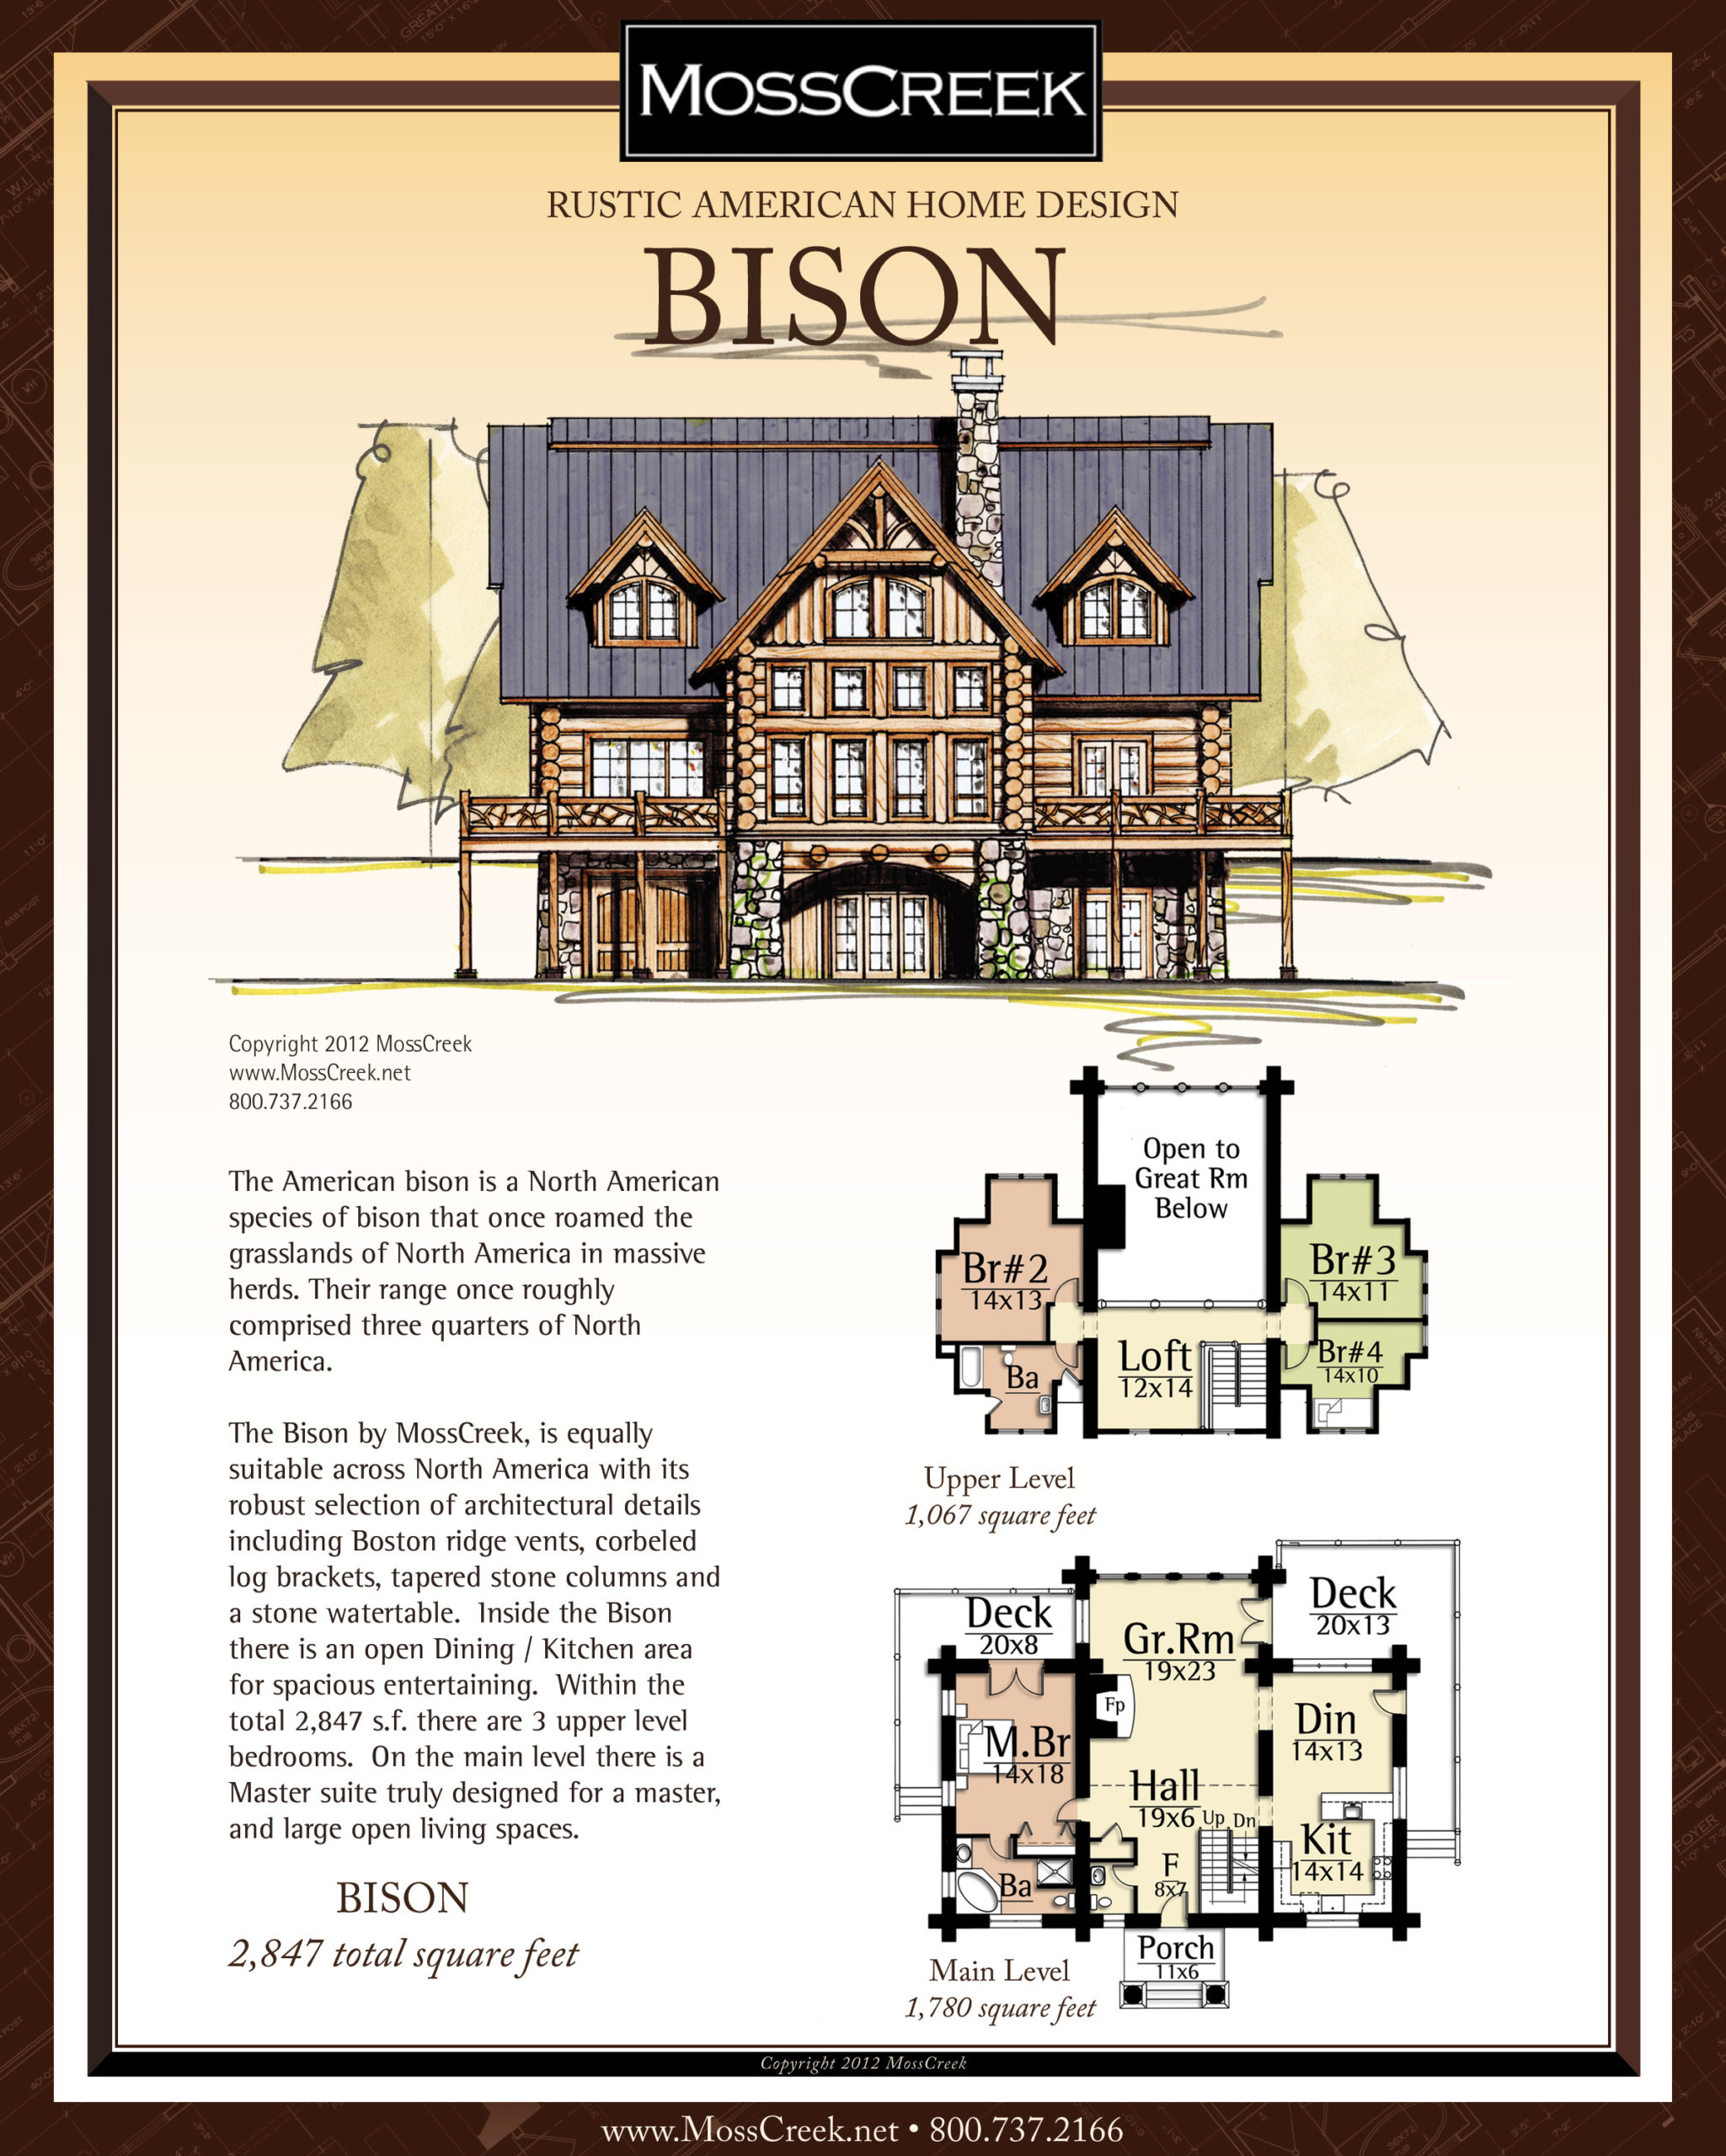 MossCreek Bison floor plan